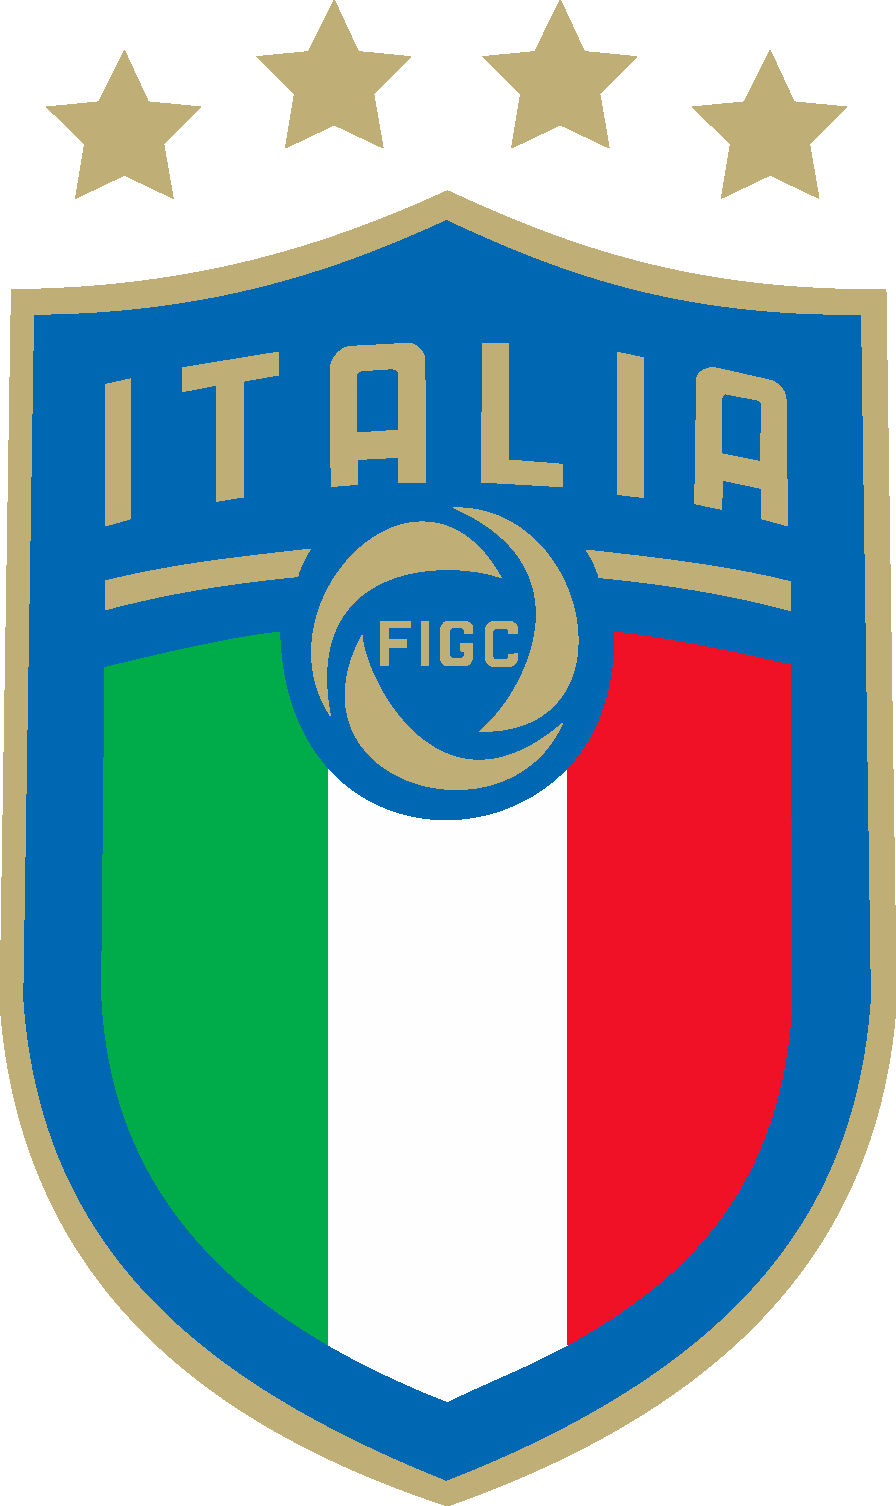 Italian football federation italy. Hunting clipart outdoorsman